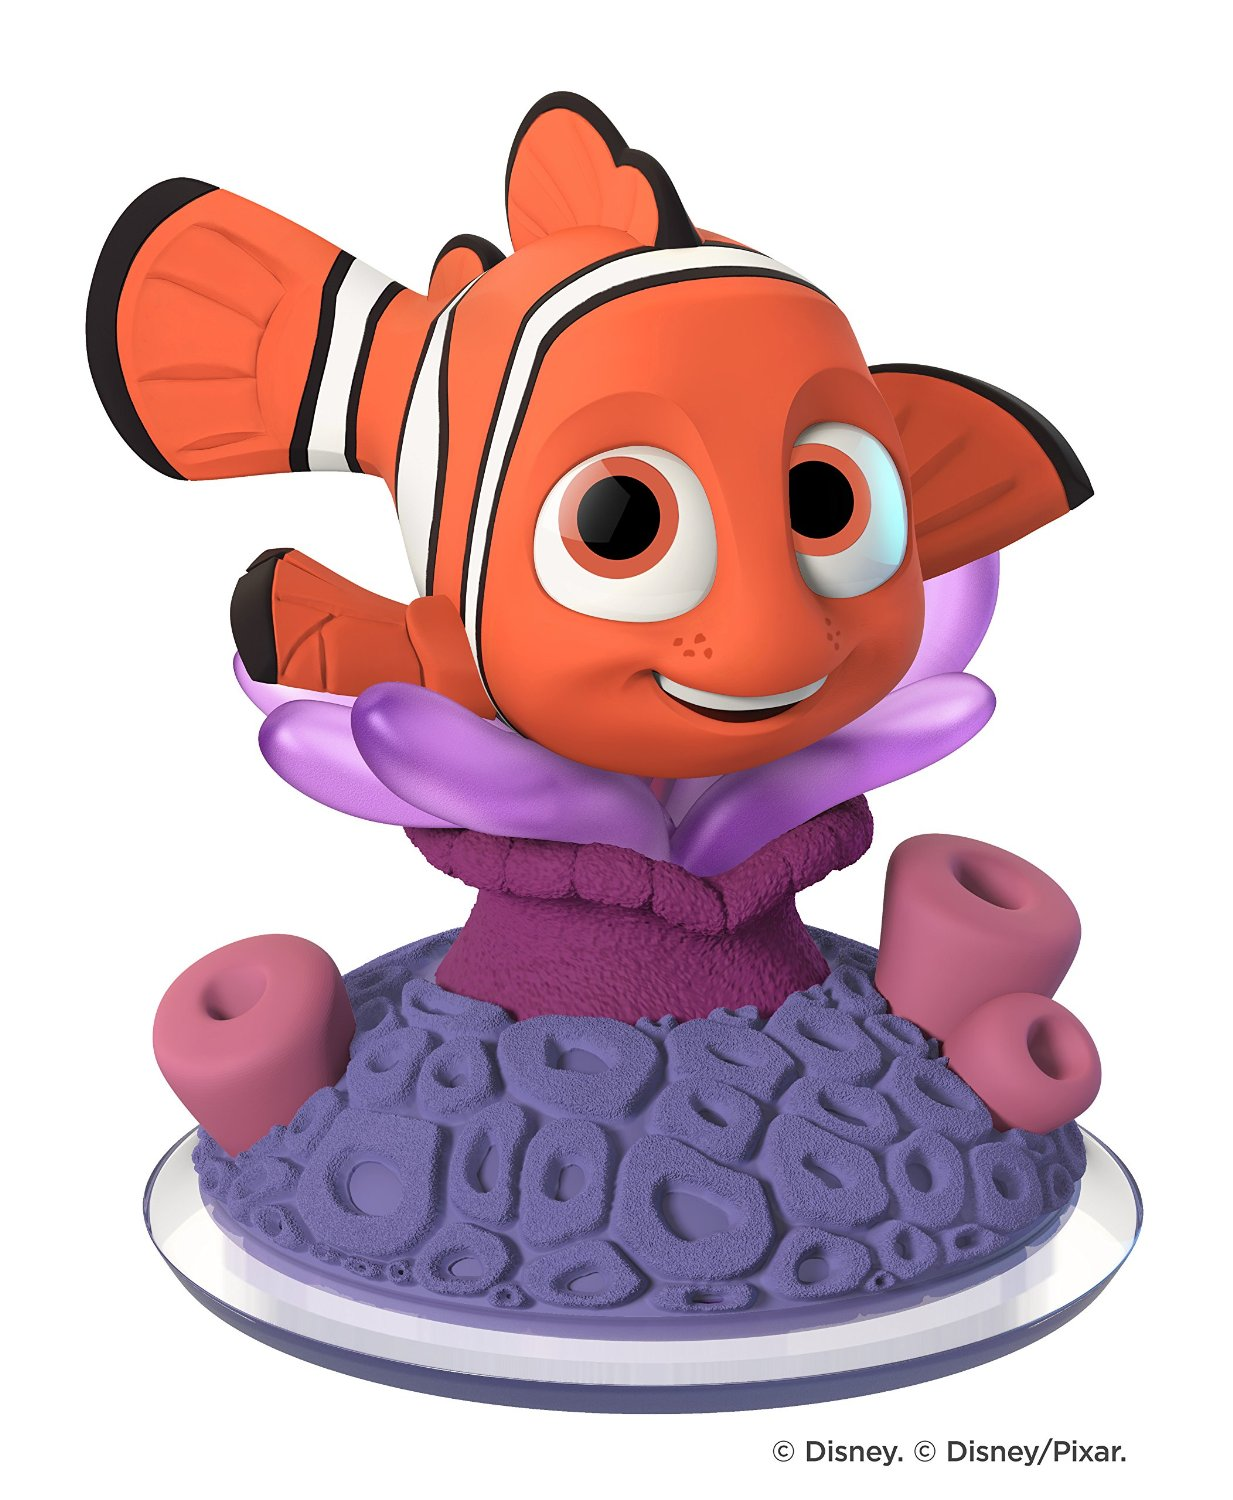 Image currently unavailable. Go to www.generator.nearhack.com and choose Nemo's Reef image, you will be redirect to Nemo's Reef Generator site.